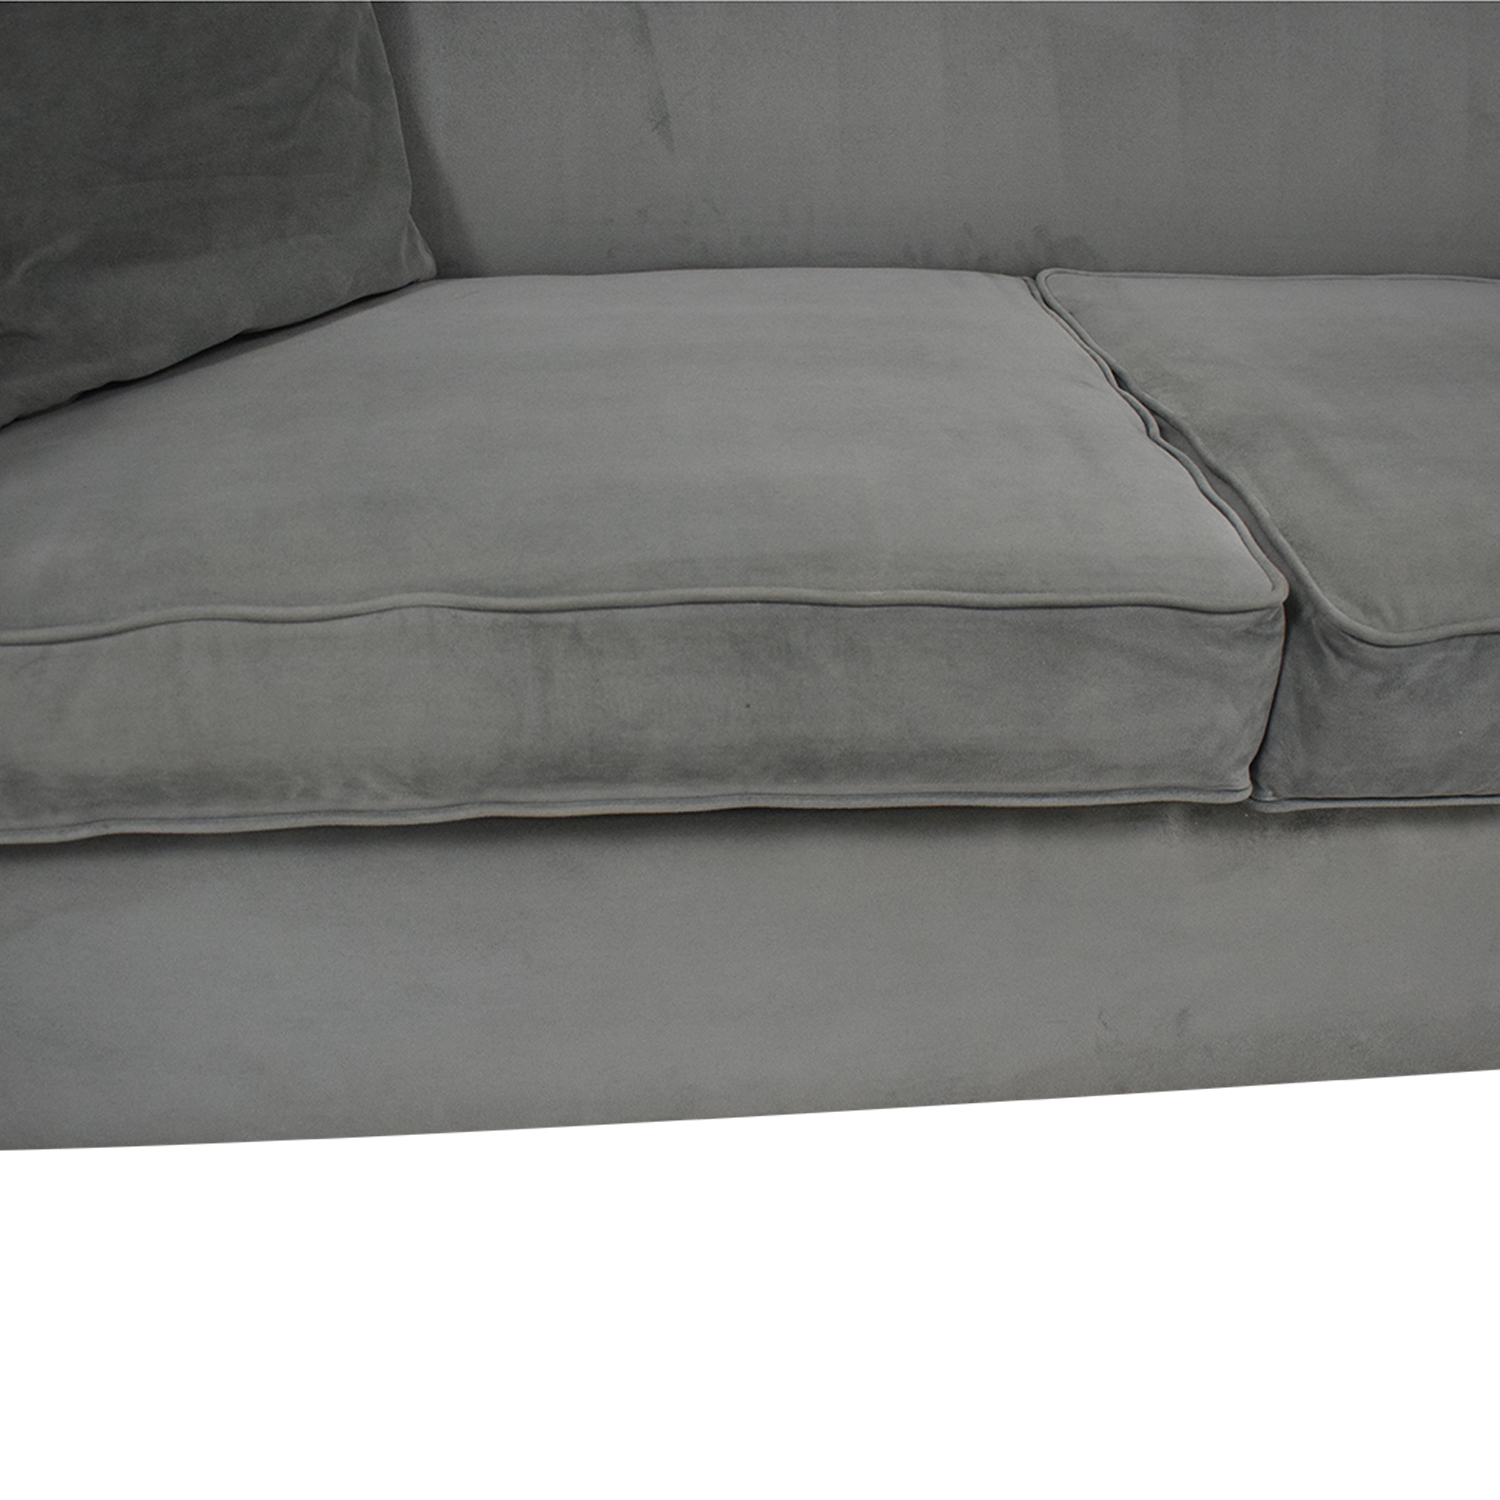 Funky Sofa FunkySofa Tiffanie Curved Sofa Sofa Beds